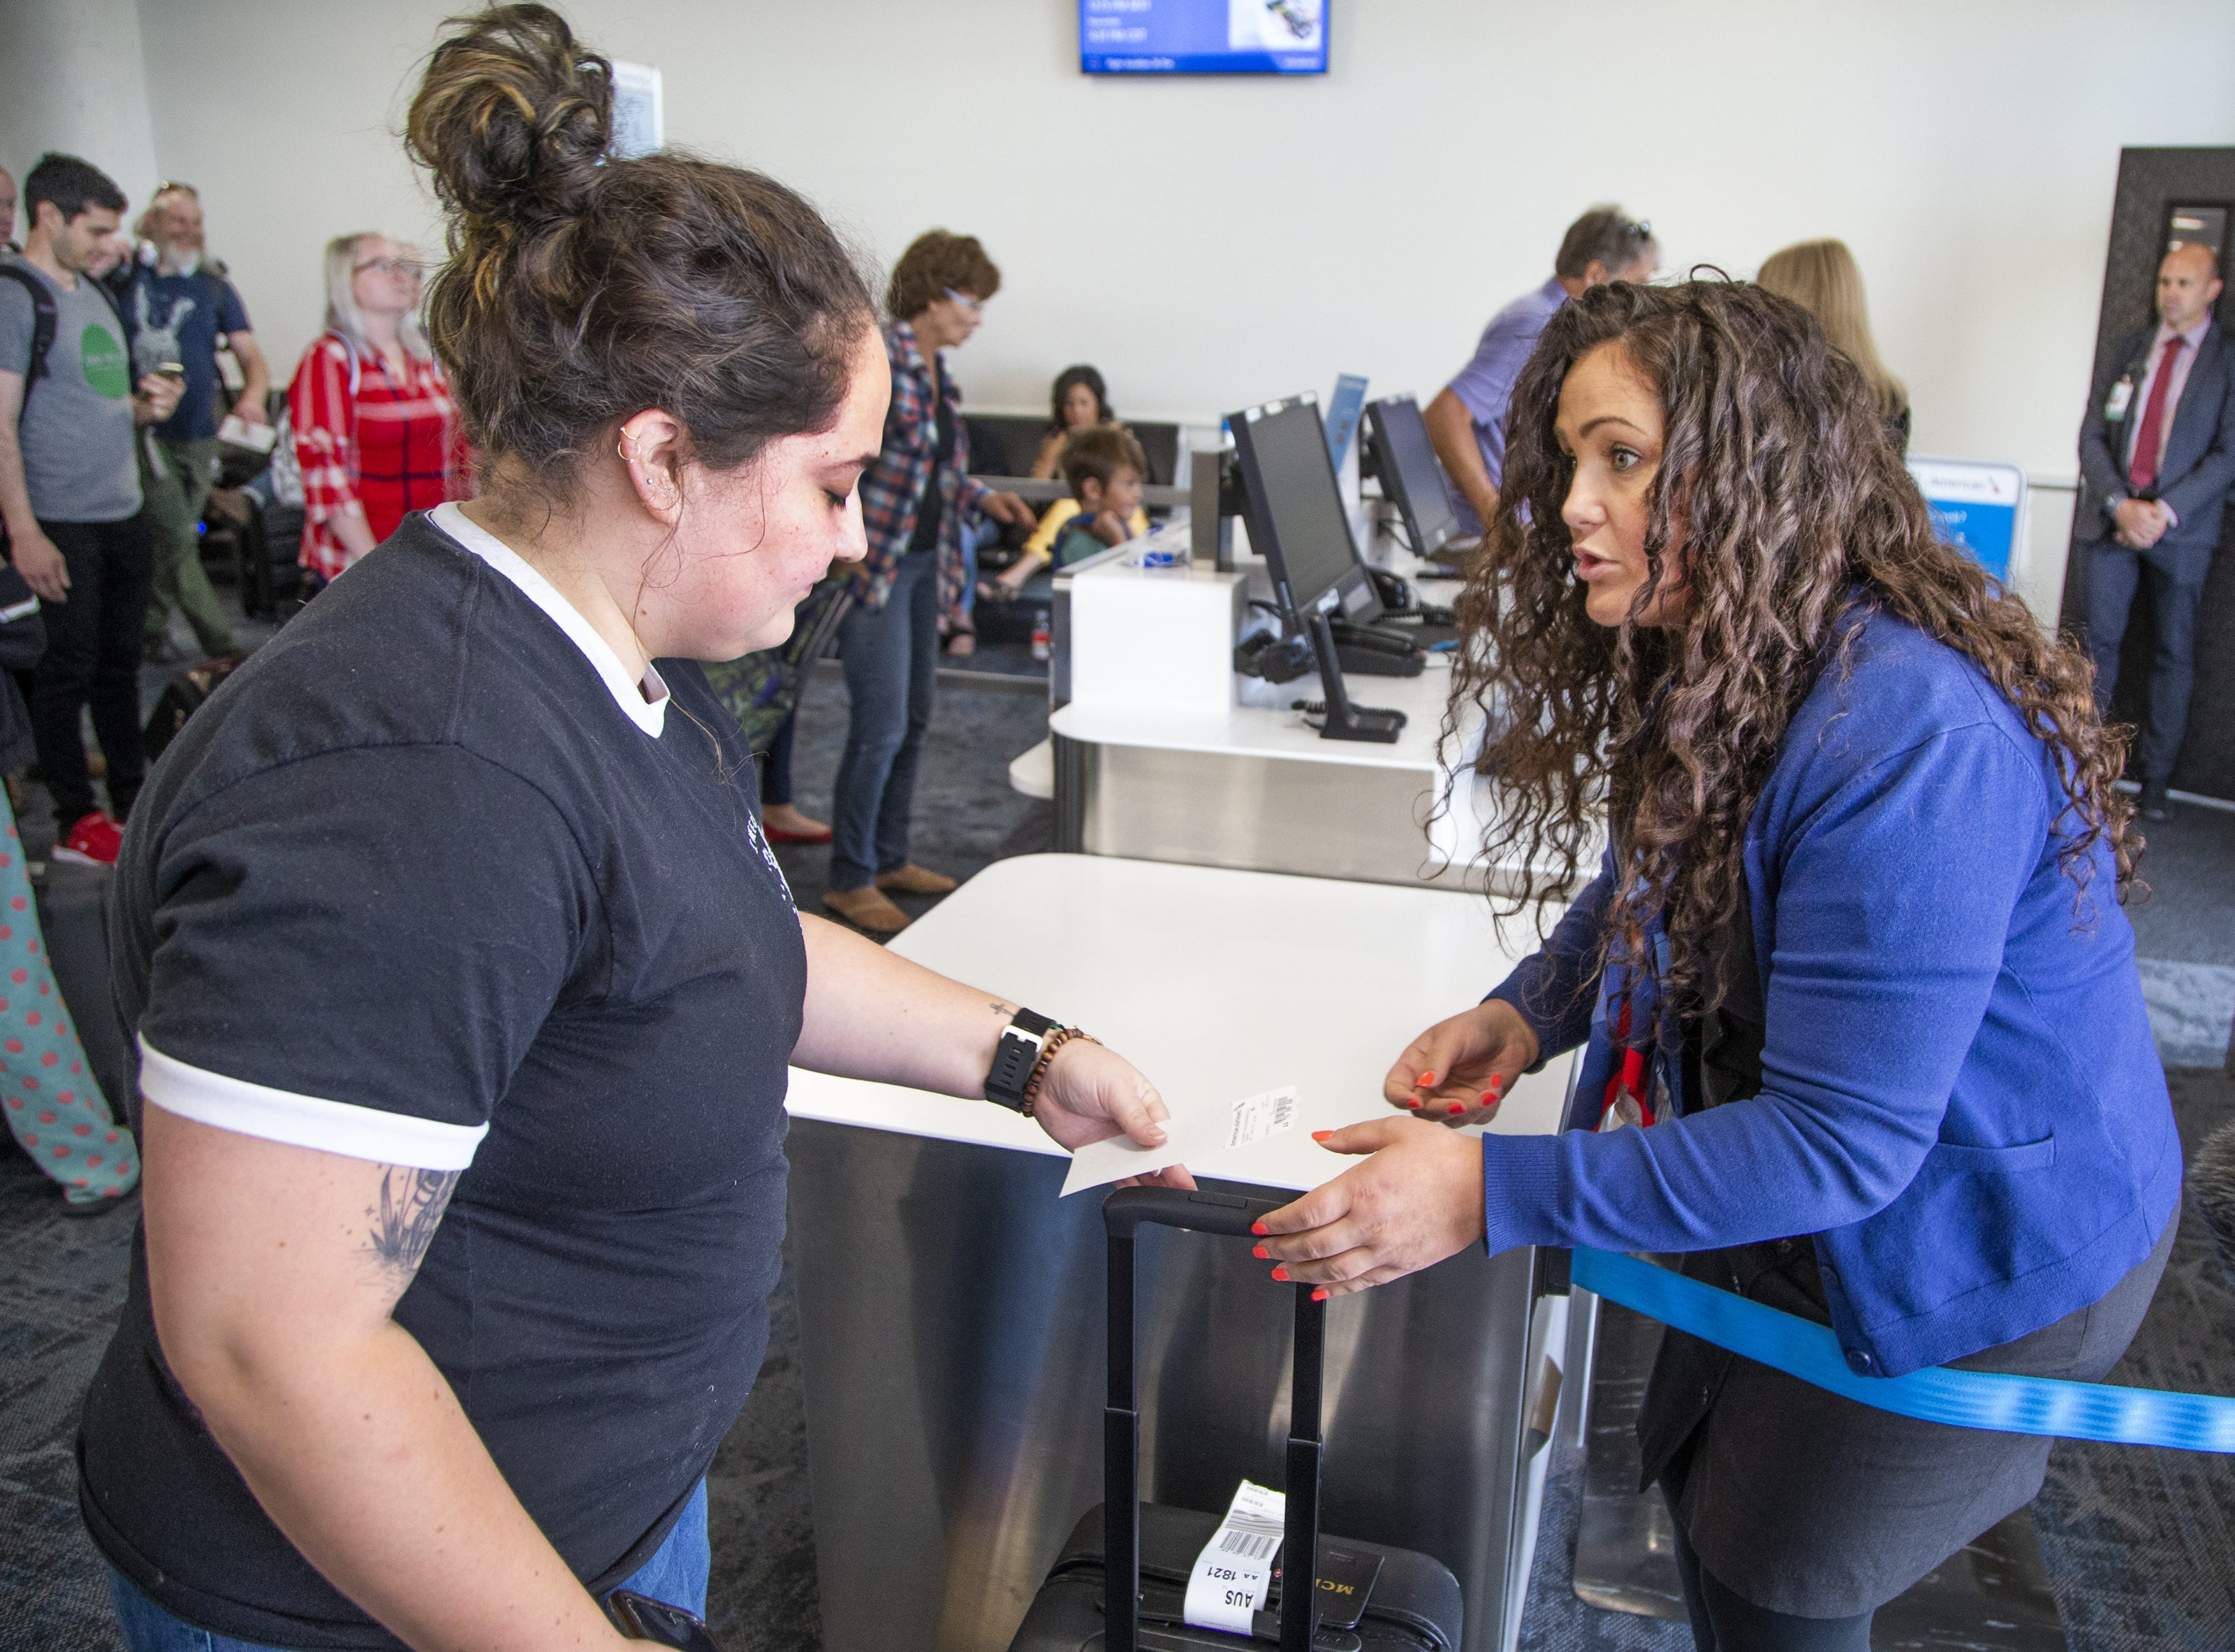 Meghan Rauker, 26, Austin, left, gate checks her bag with American Airlines gate agent Ashleigh Tenifa, before boarding an Airbus A-319 at Sky Harbor International Airport in Phoenix, Friday, May 10, 2019.  The flight was unloaded, serviced, cleaned, reloaded and reboarded for a flight to Austin within 30 minutes.